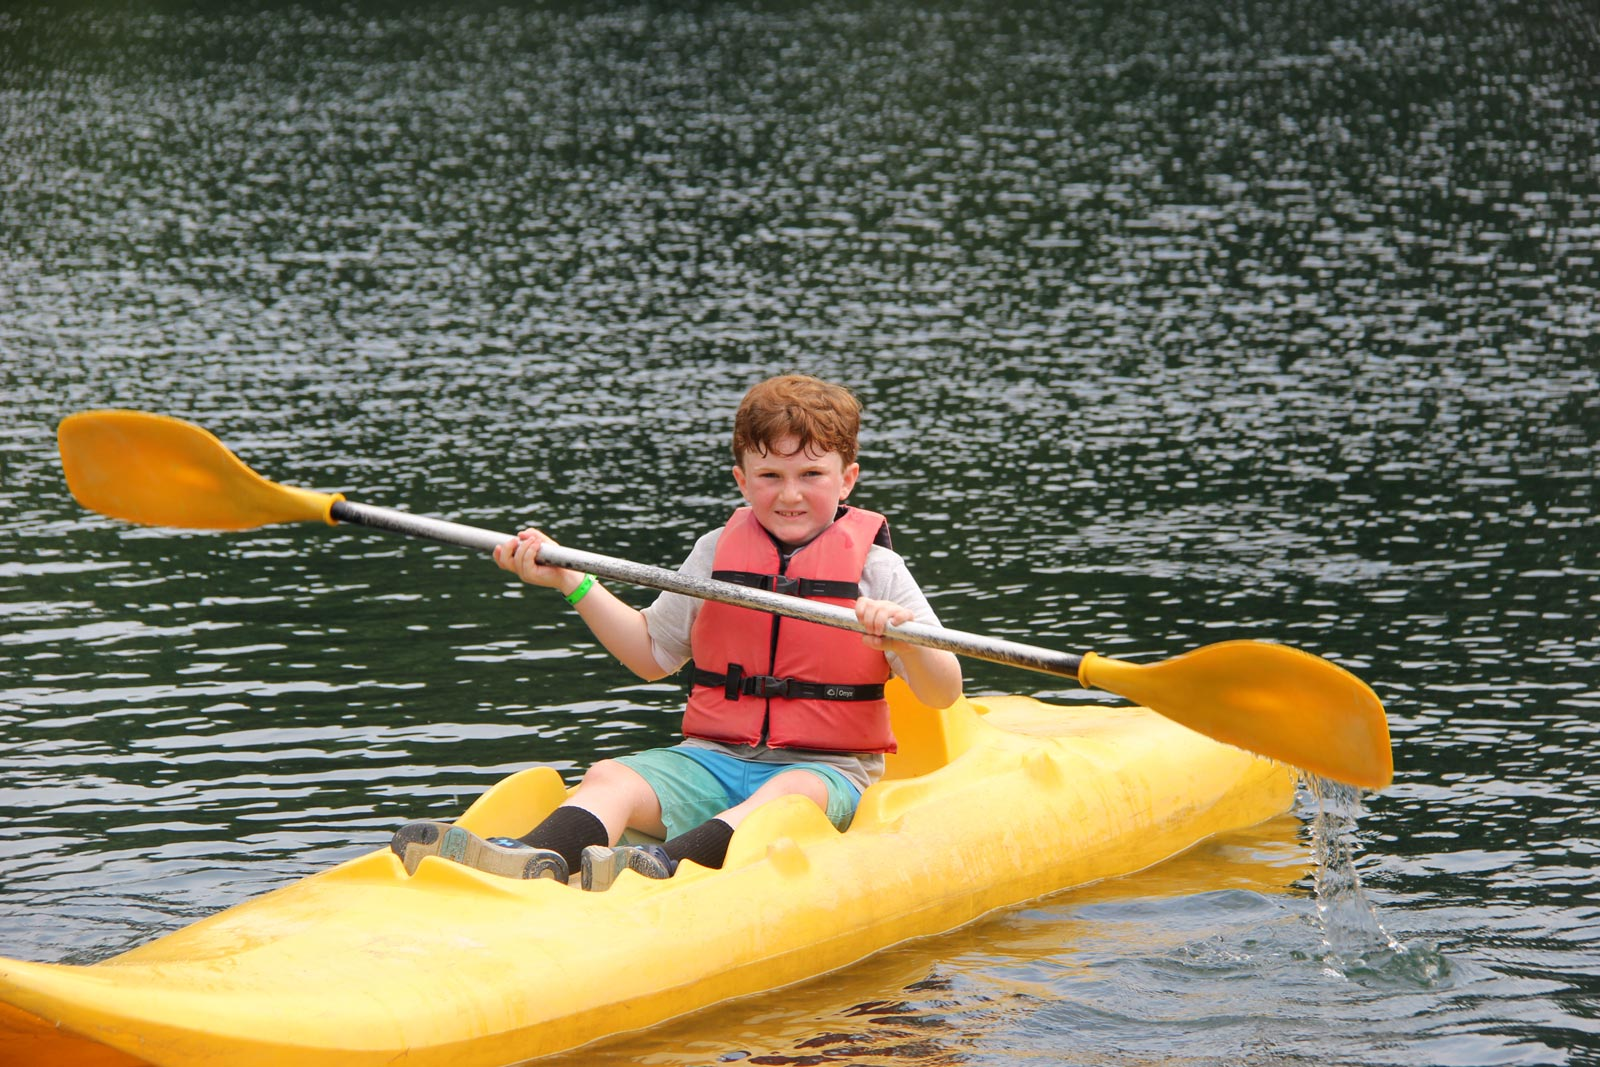 Summer Camp Kayaking in Bergen County, NJ